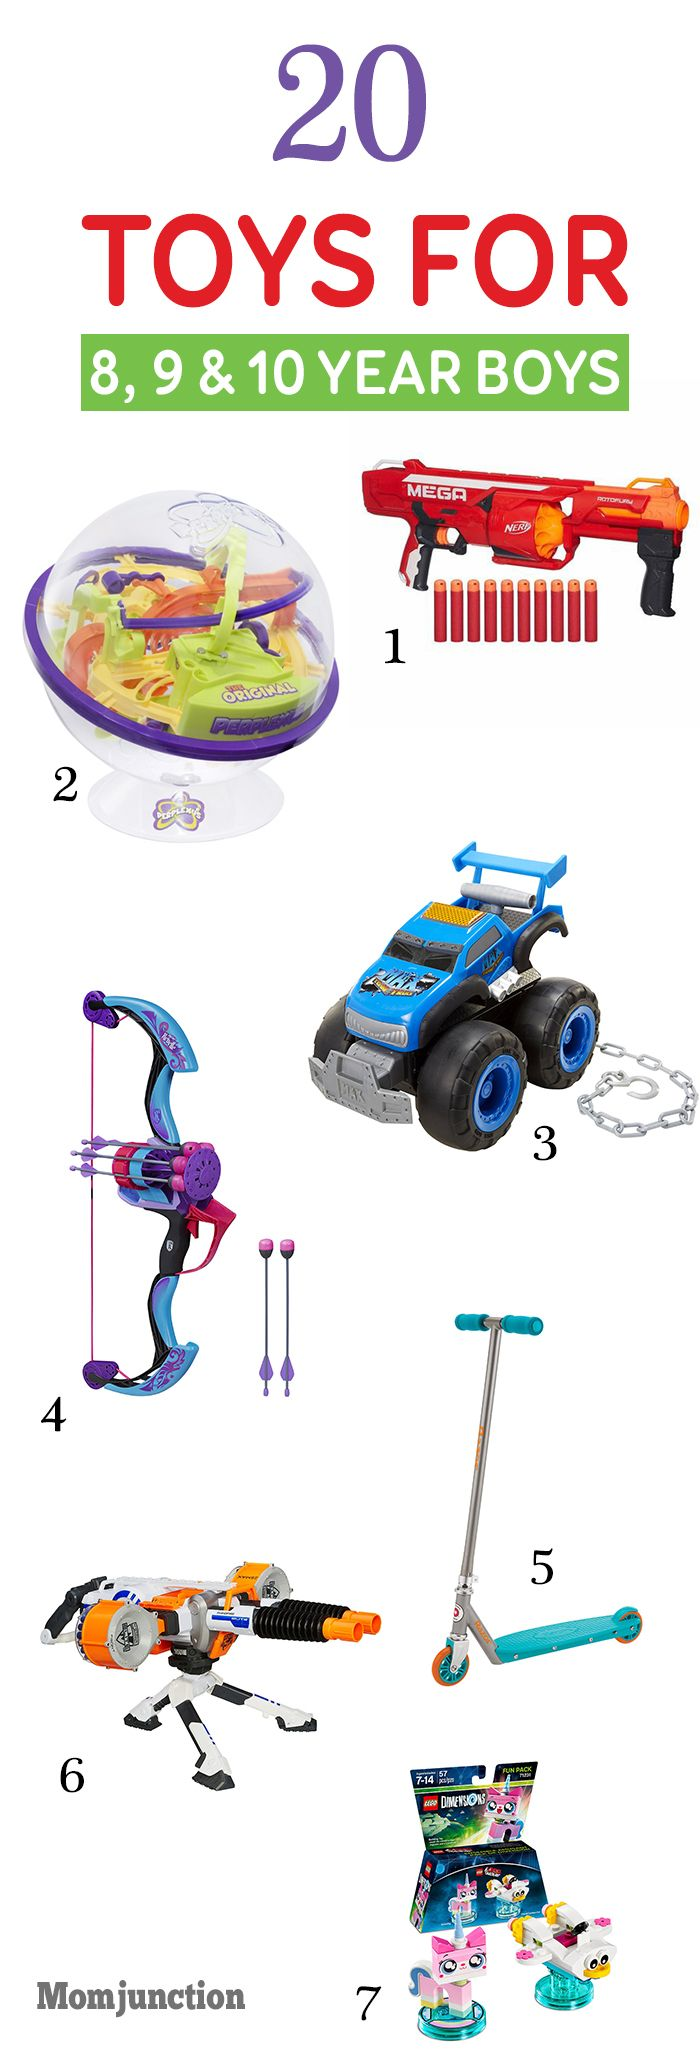 20 Best Toys For 8 9 10 Year Old Boys